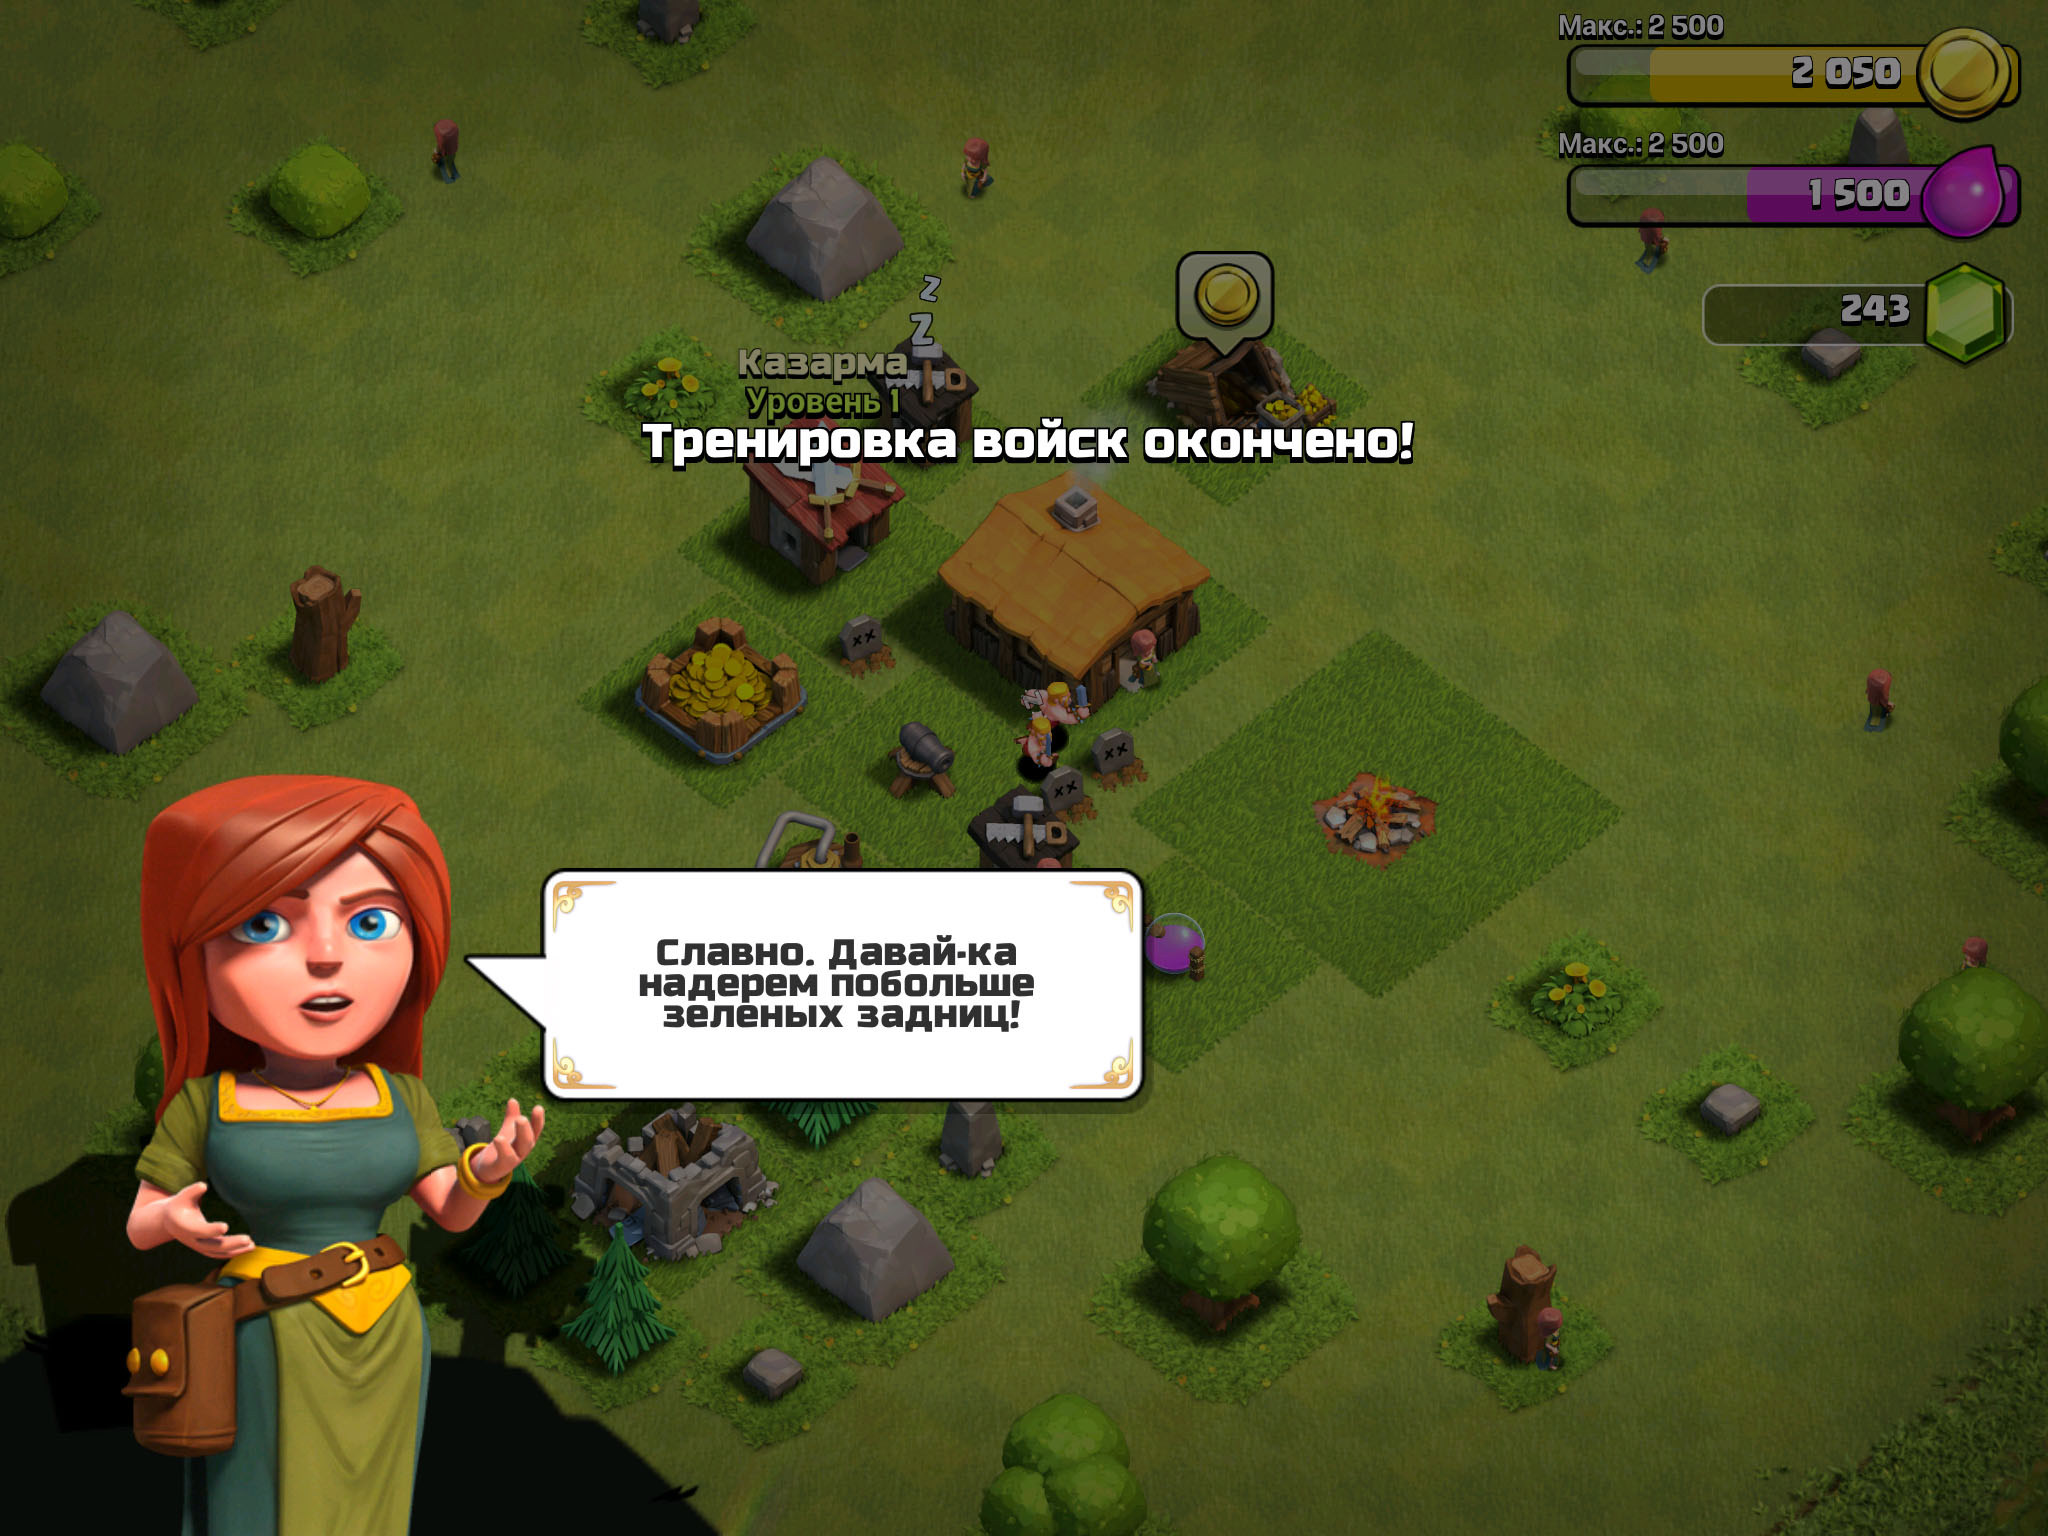 clash of clans essay How clash of clans helped me write an essay but first a little about myself currently townhall six in an amazing clan called bad@ssery and thats were the story begins a few of my clannies were discussing their irl jobs and one of them mentioned fracking.